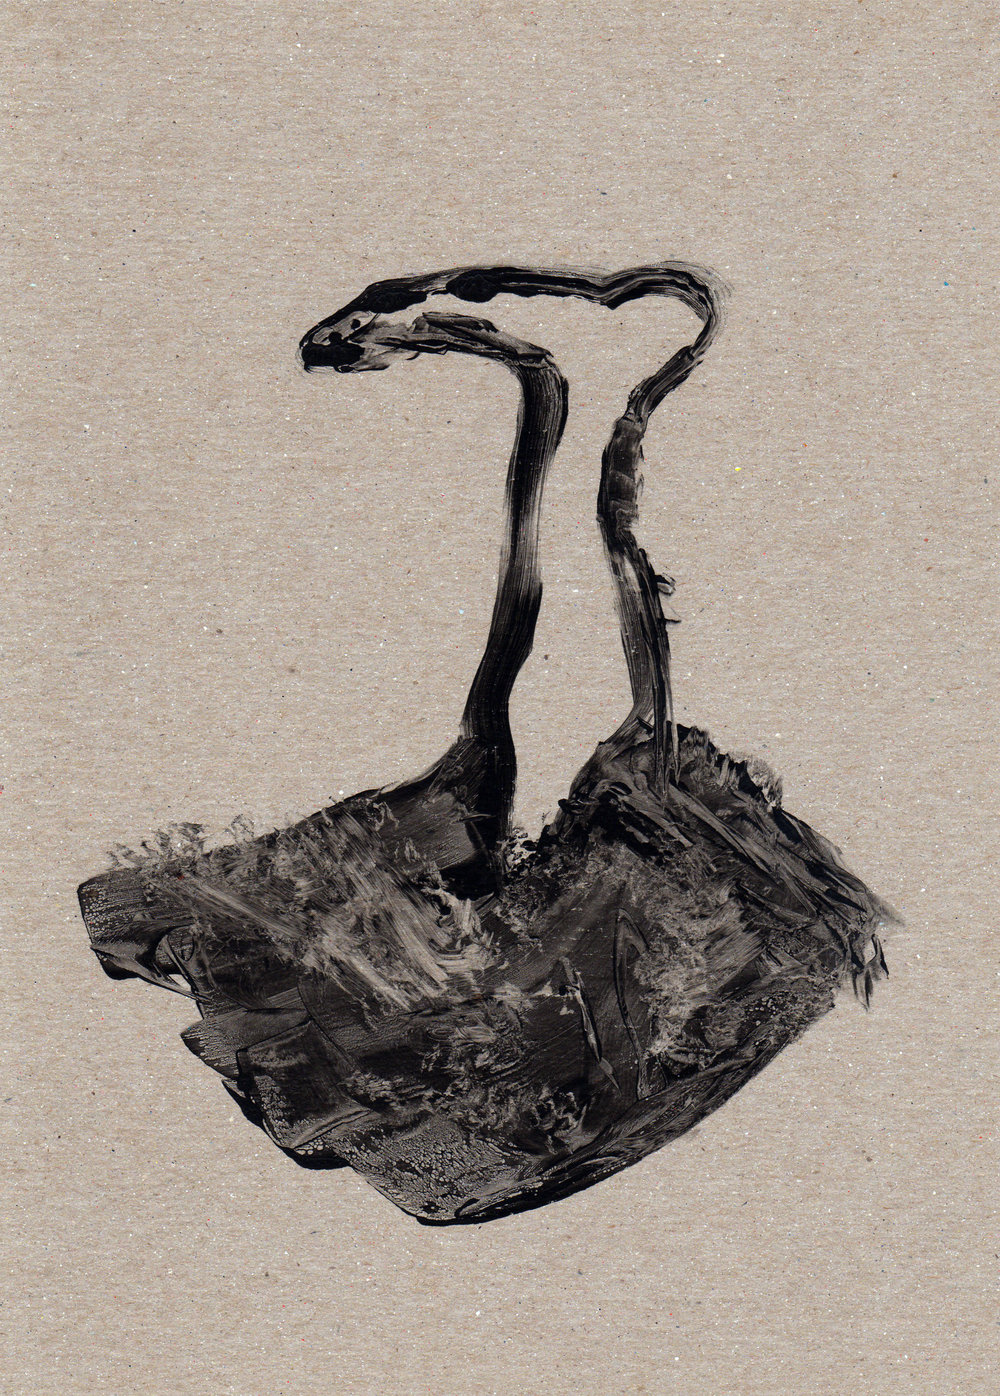 Untitled One Foot Out of the Grave, 2014, gelatin monotype, 11x8 inches